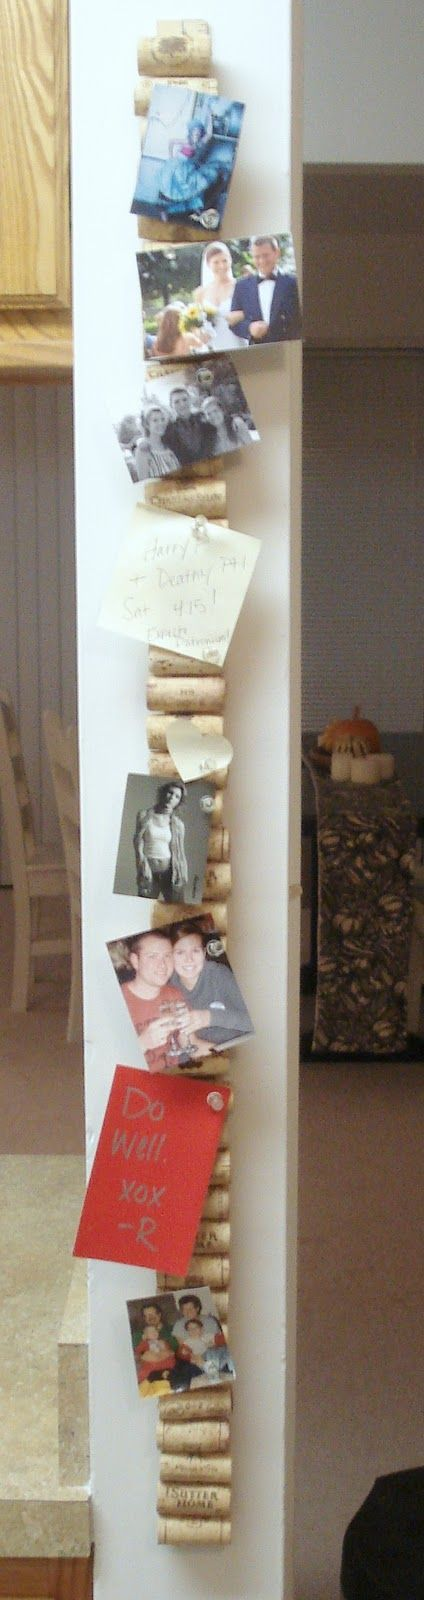 EASY DIY wine cork pin board. Love this!: Wine Corks Boards, Christmas Cards, Yard Sticks, Idea, Vertical Corks, Pin Boards, Cork Boards, Holidays Cards, Xmas Cards